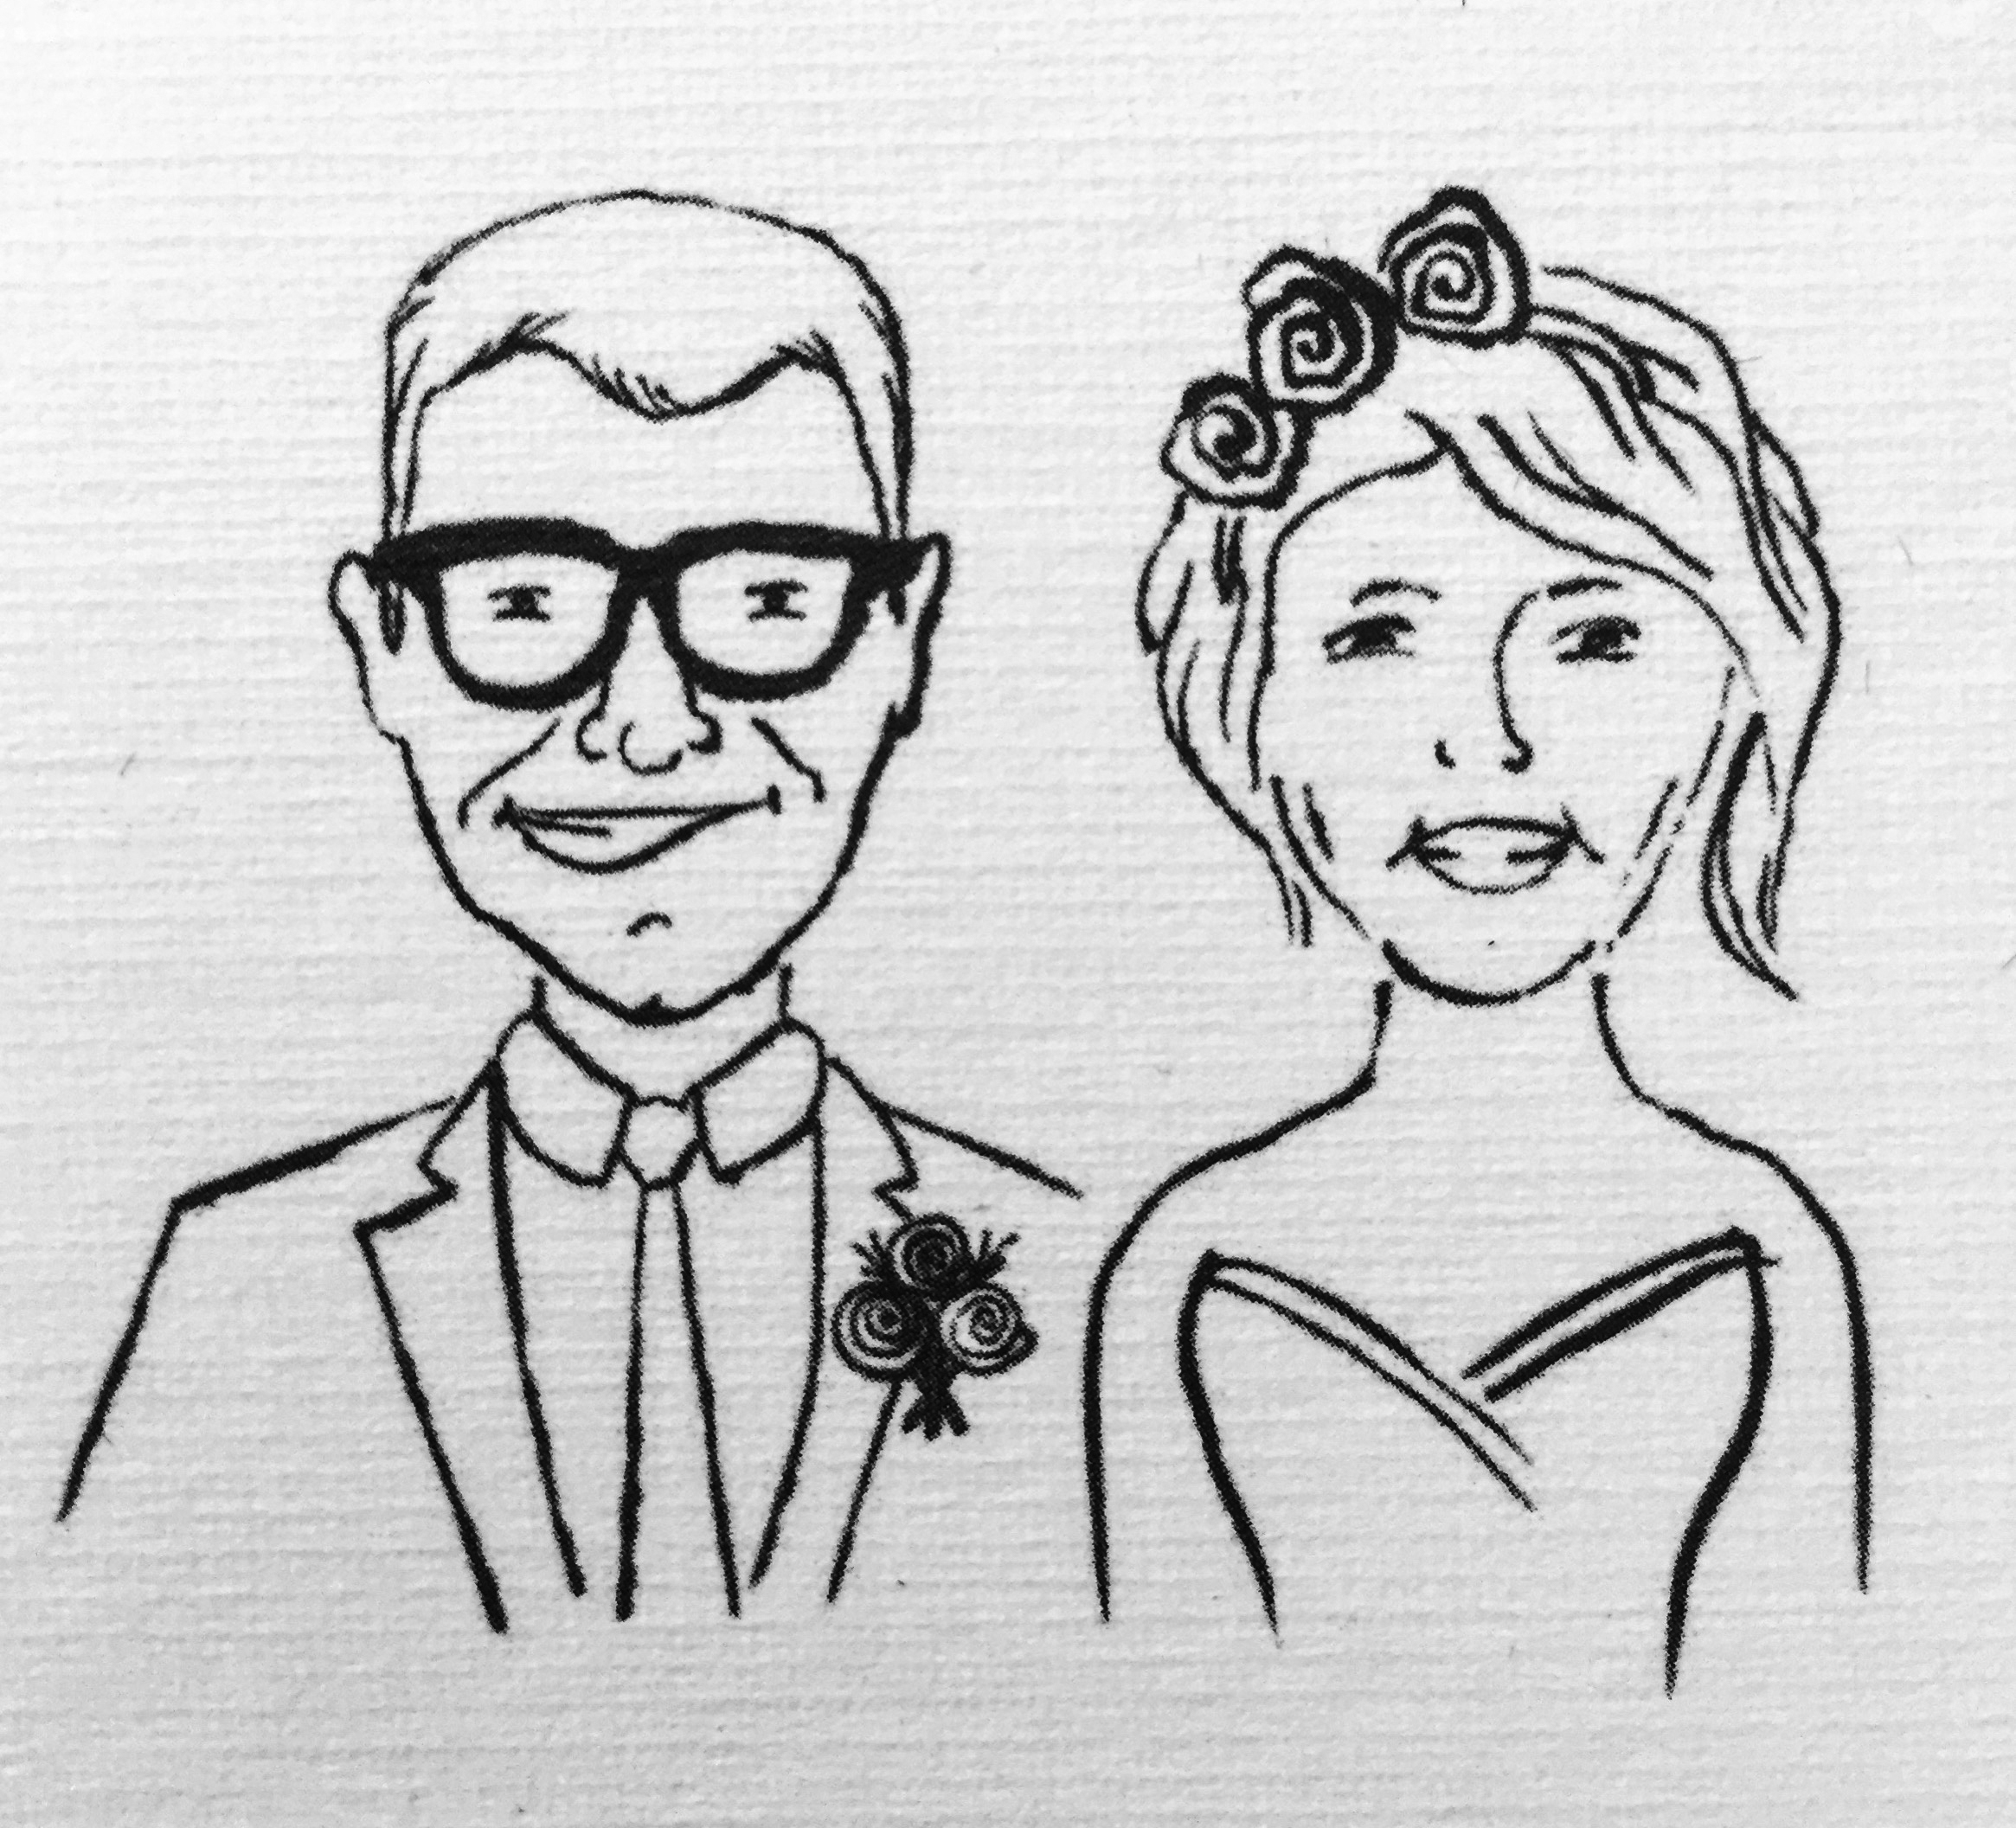 A drawn portrait of Joe and Frances.